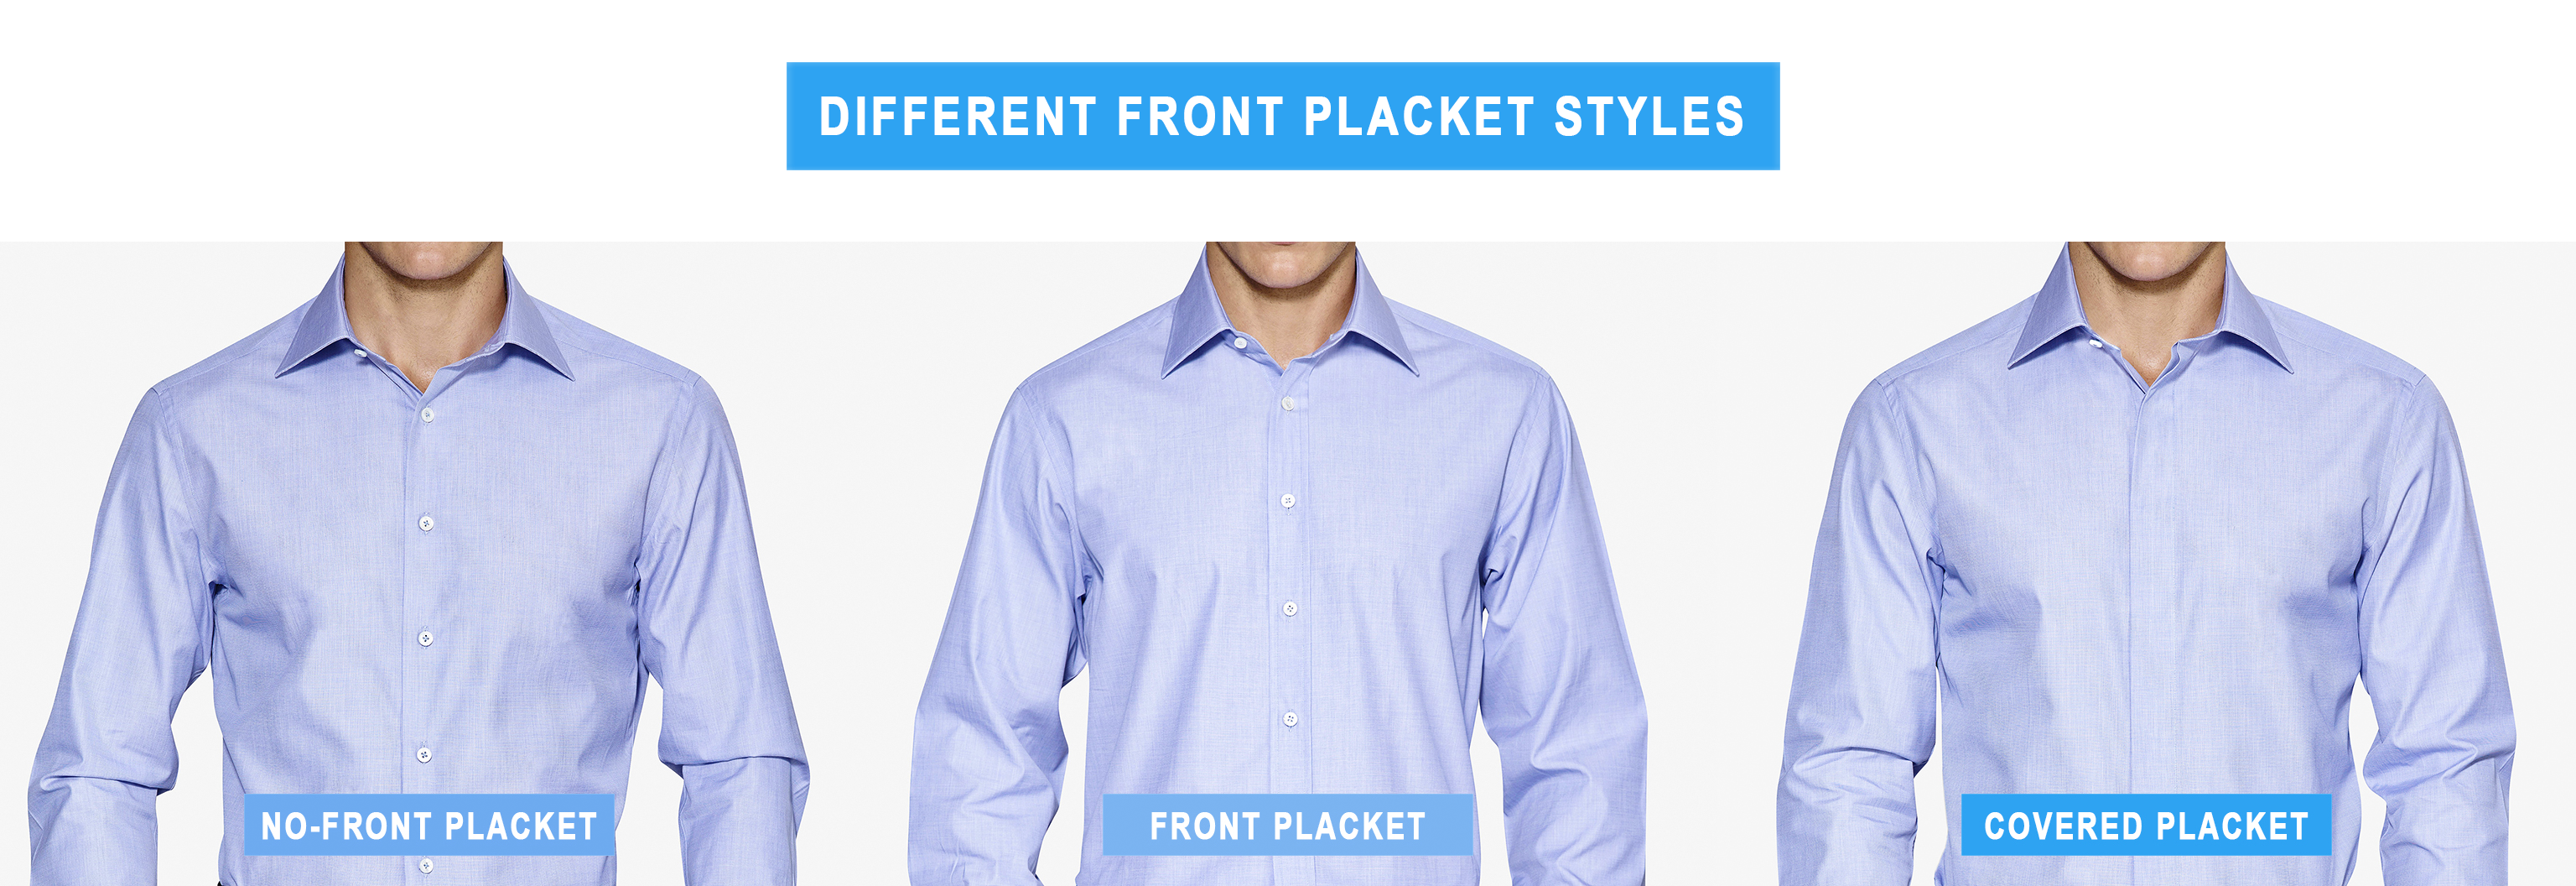 different front placket styles